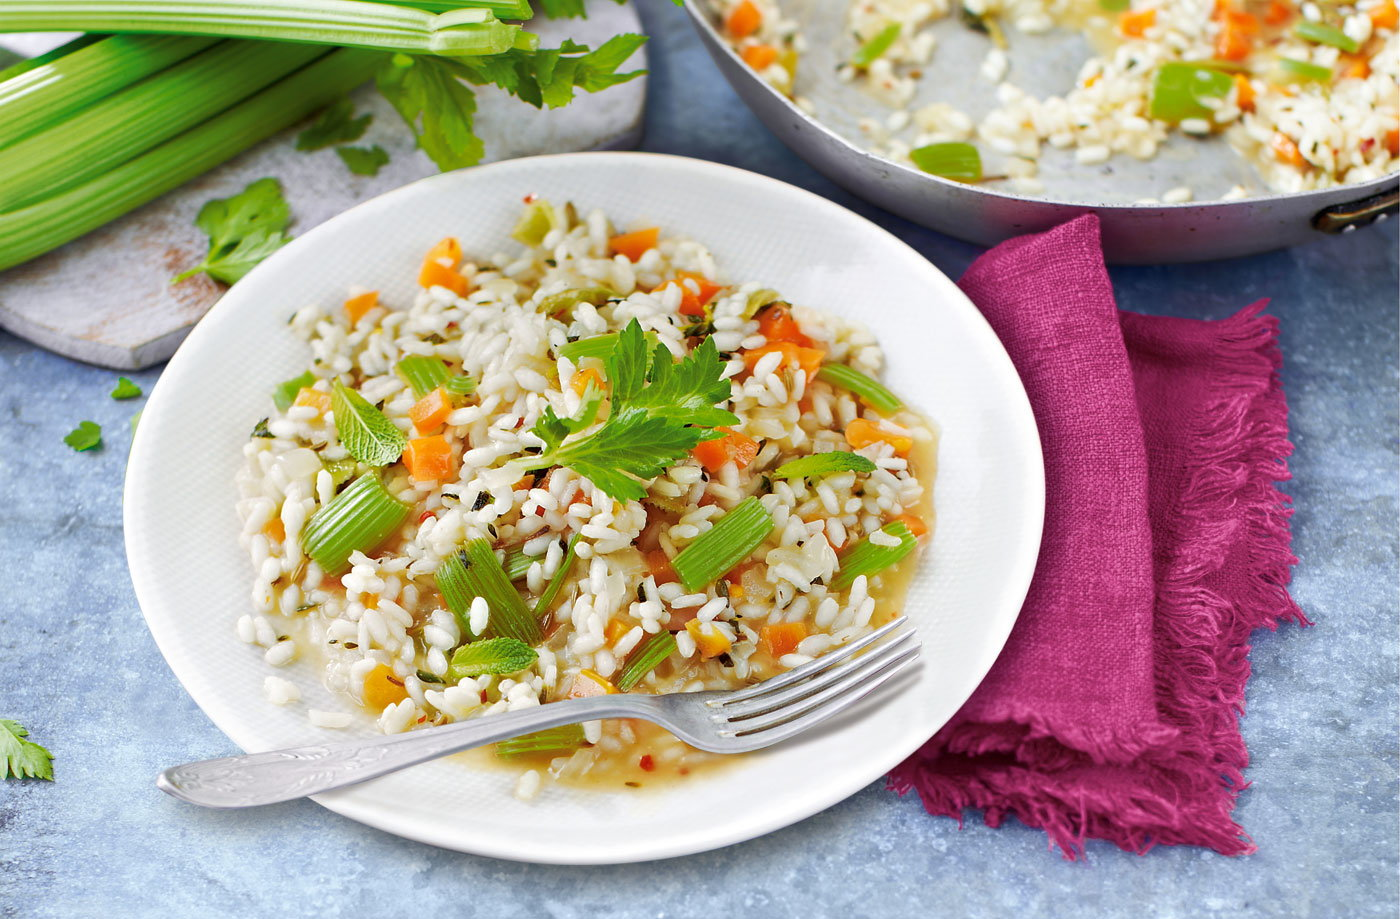 Celery risotto